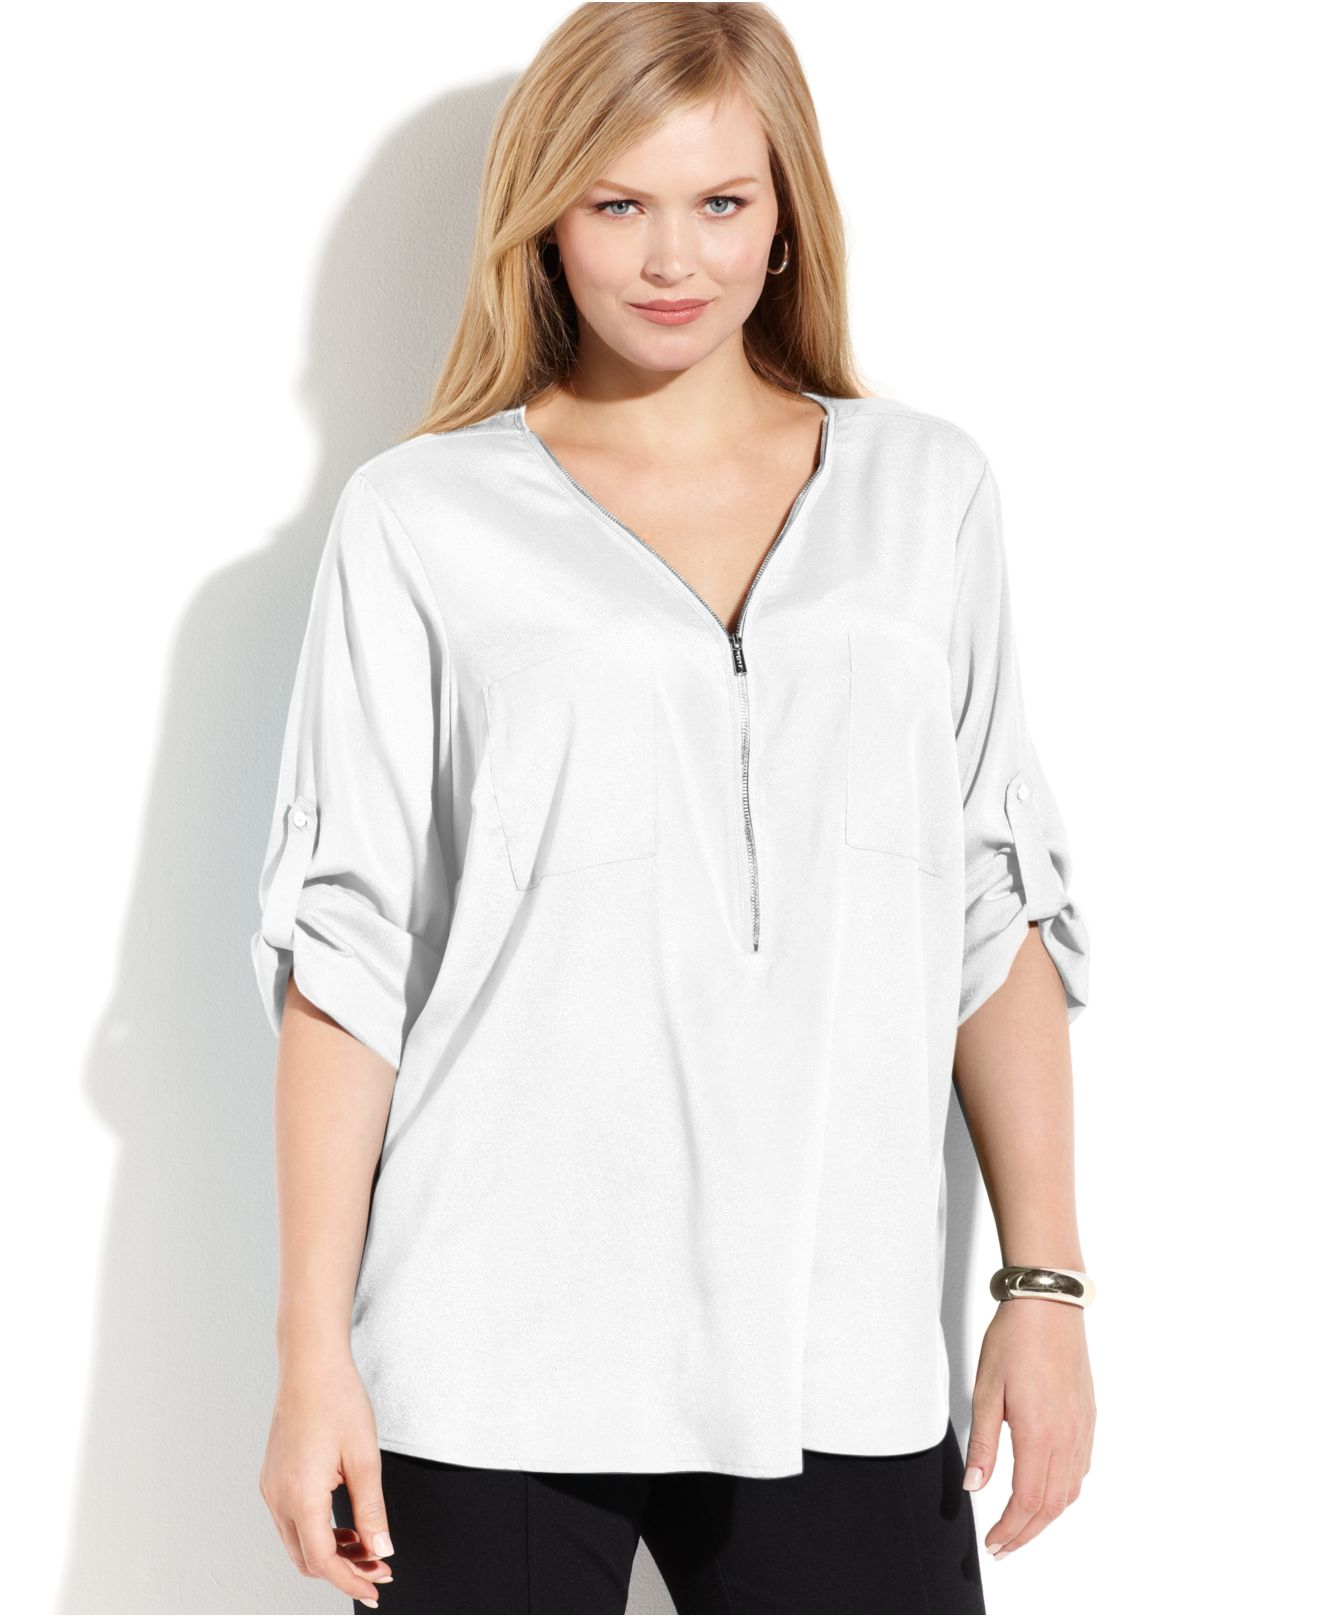 bf9a90fcde8 Lyst - Calvin Klein Plus Size Roll-Tab-Sleeve Zip-Front Blouse in White